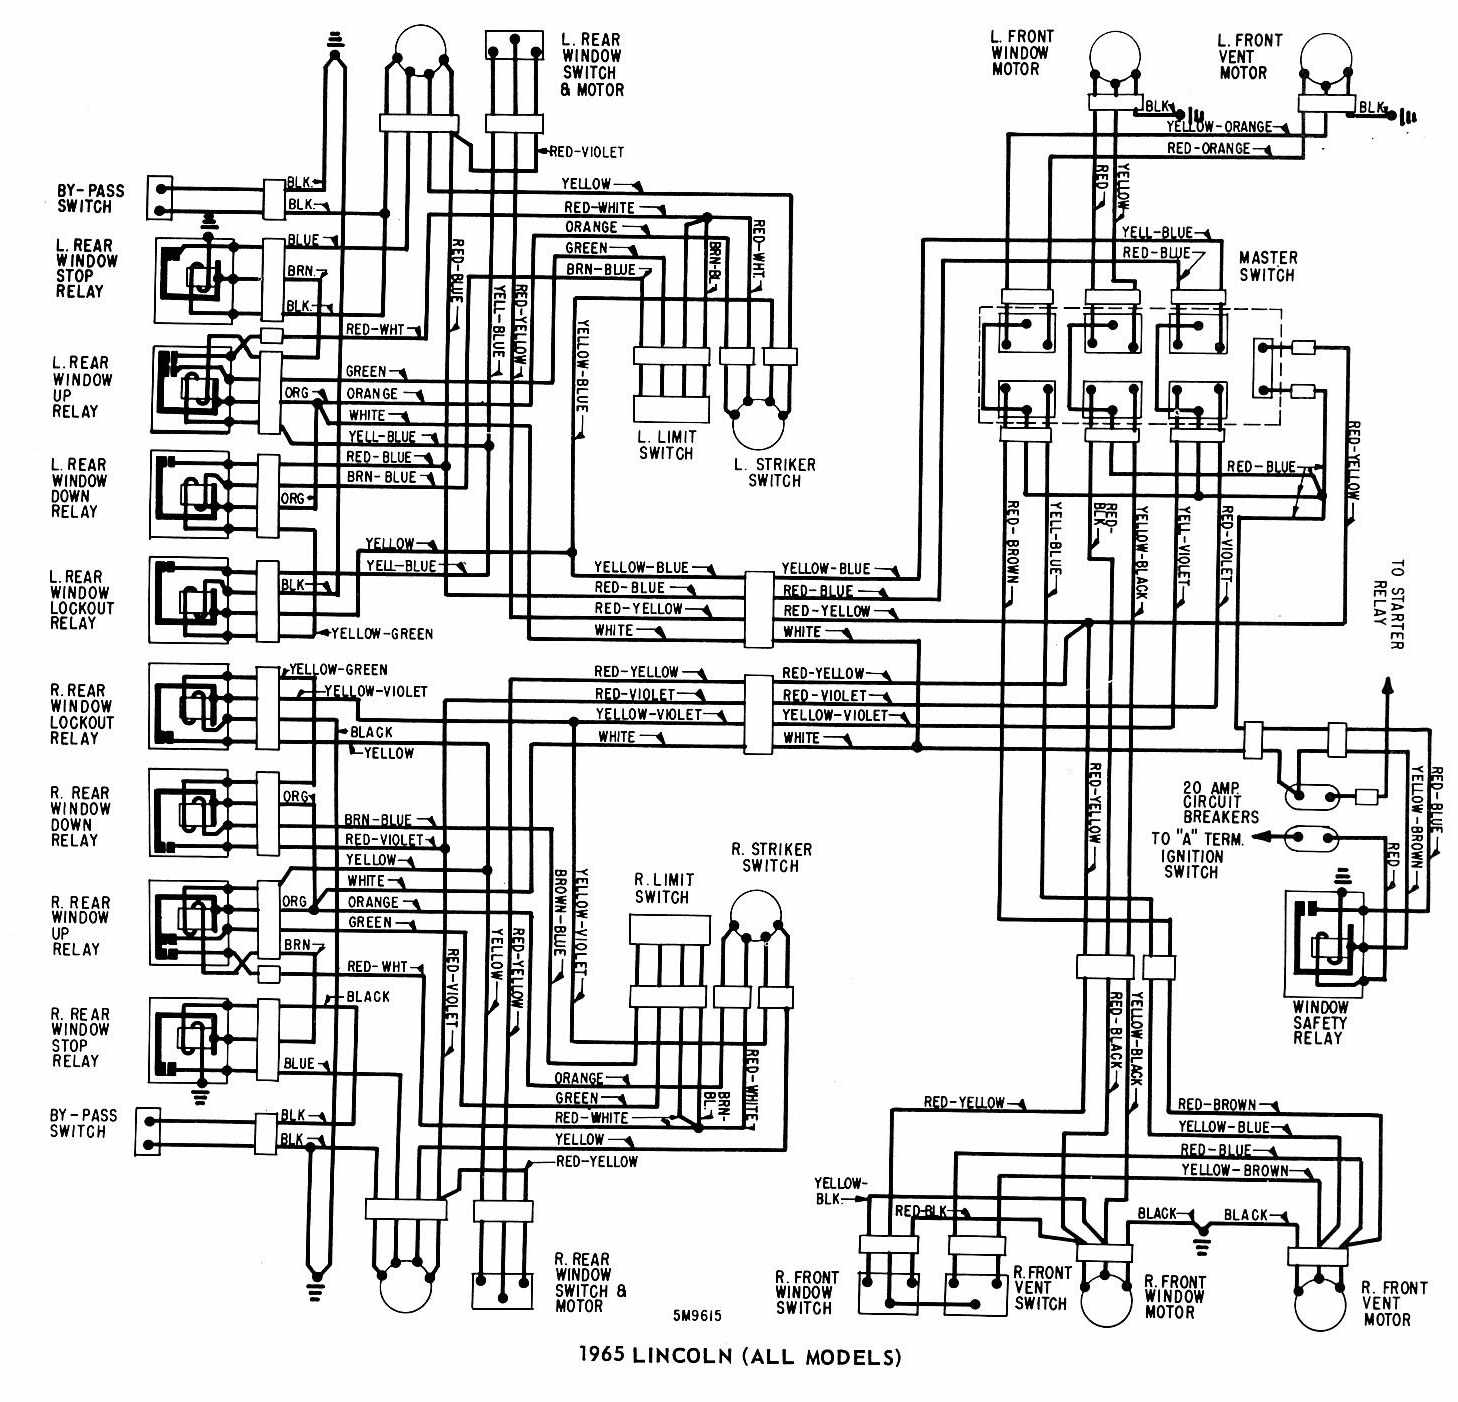 medium resolution of 1971 lincoln wiring diagram wiring diagrams lincoln continental engine diagram 1976 lincoln continental wiring diagrams wiring